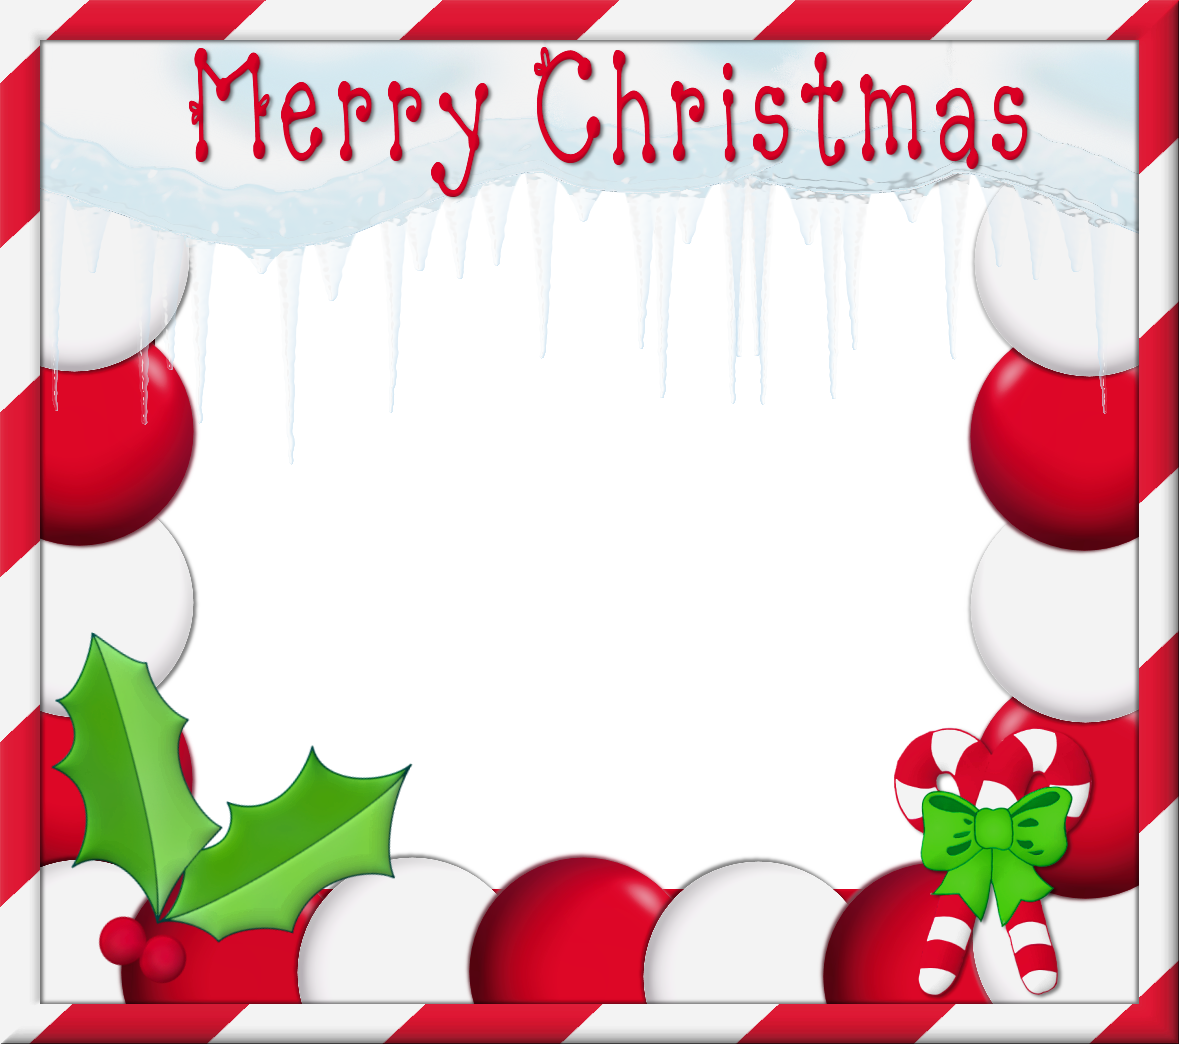 Merry Christmas PNG Photo Frame.